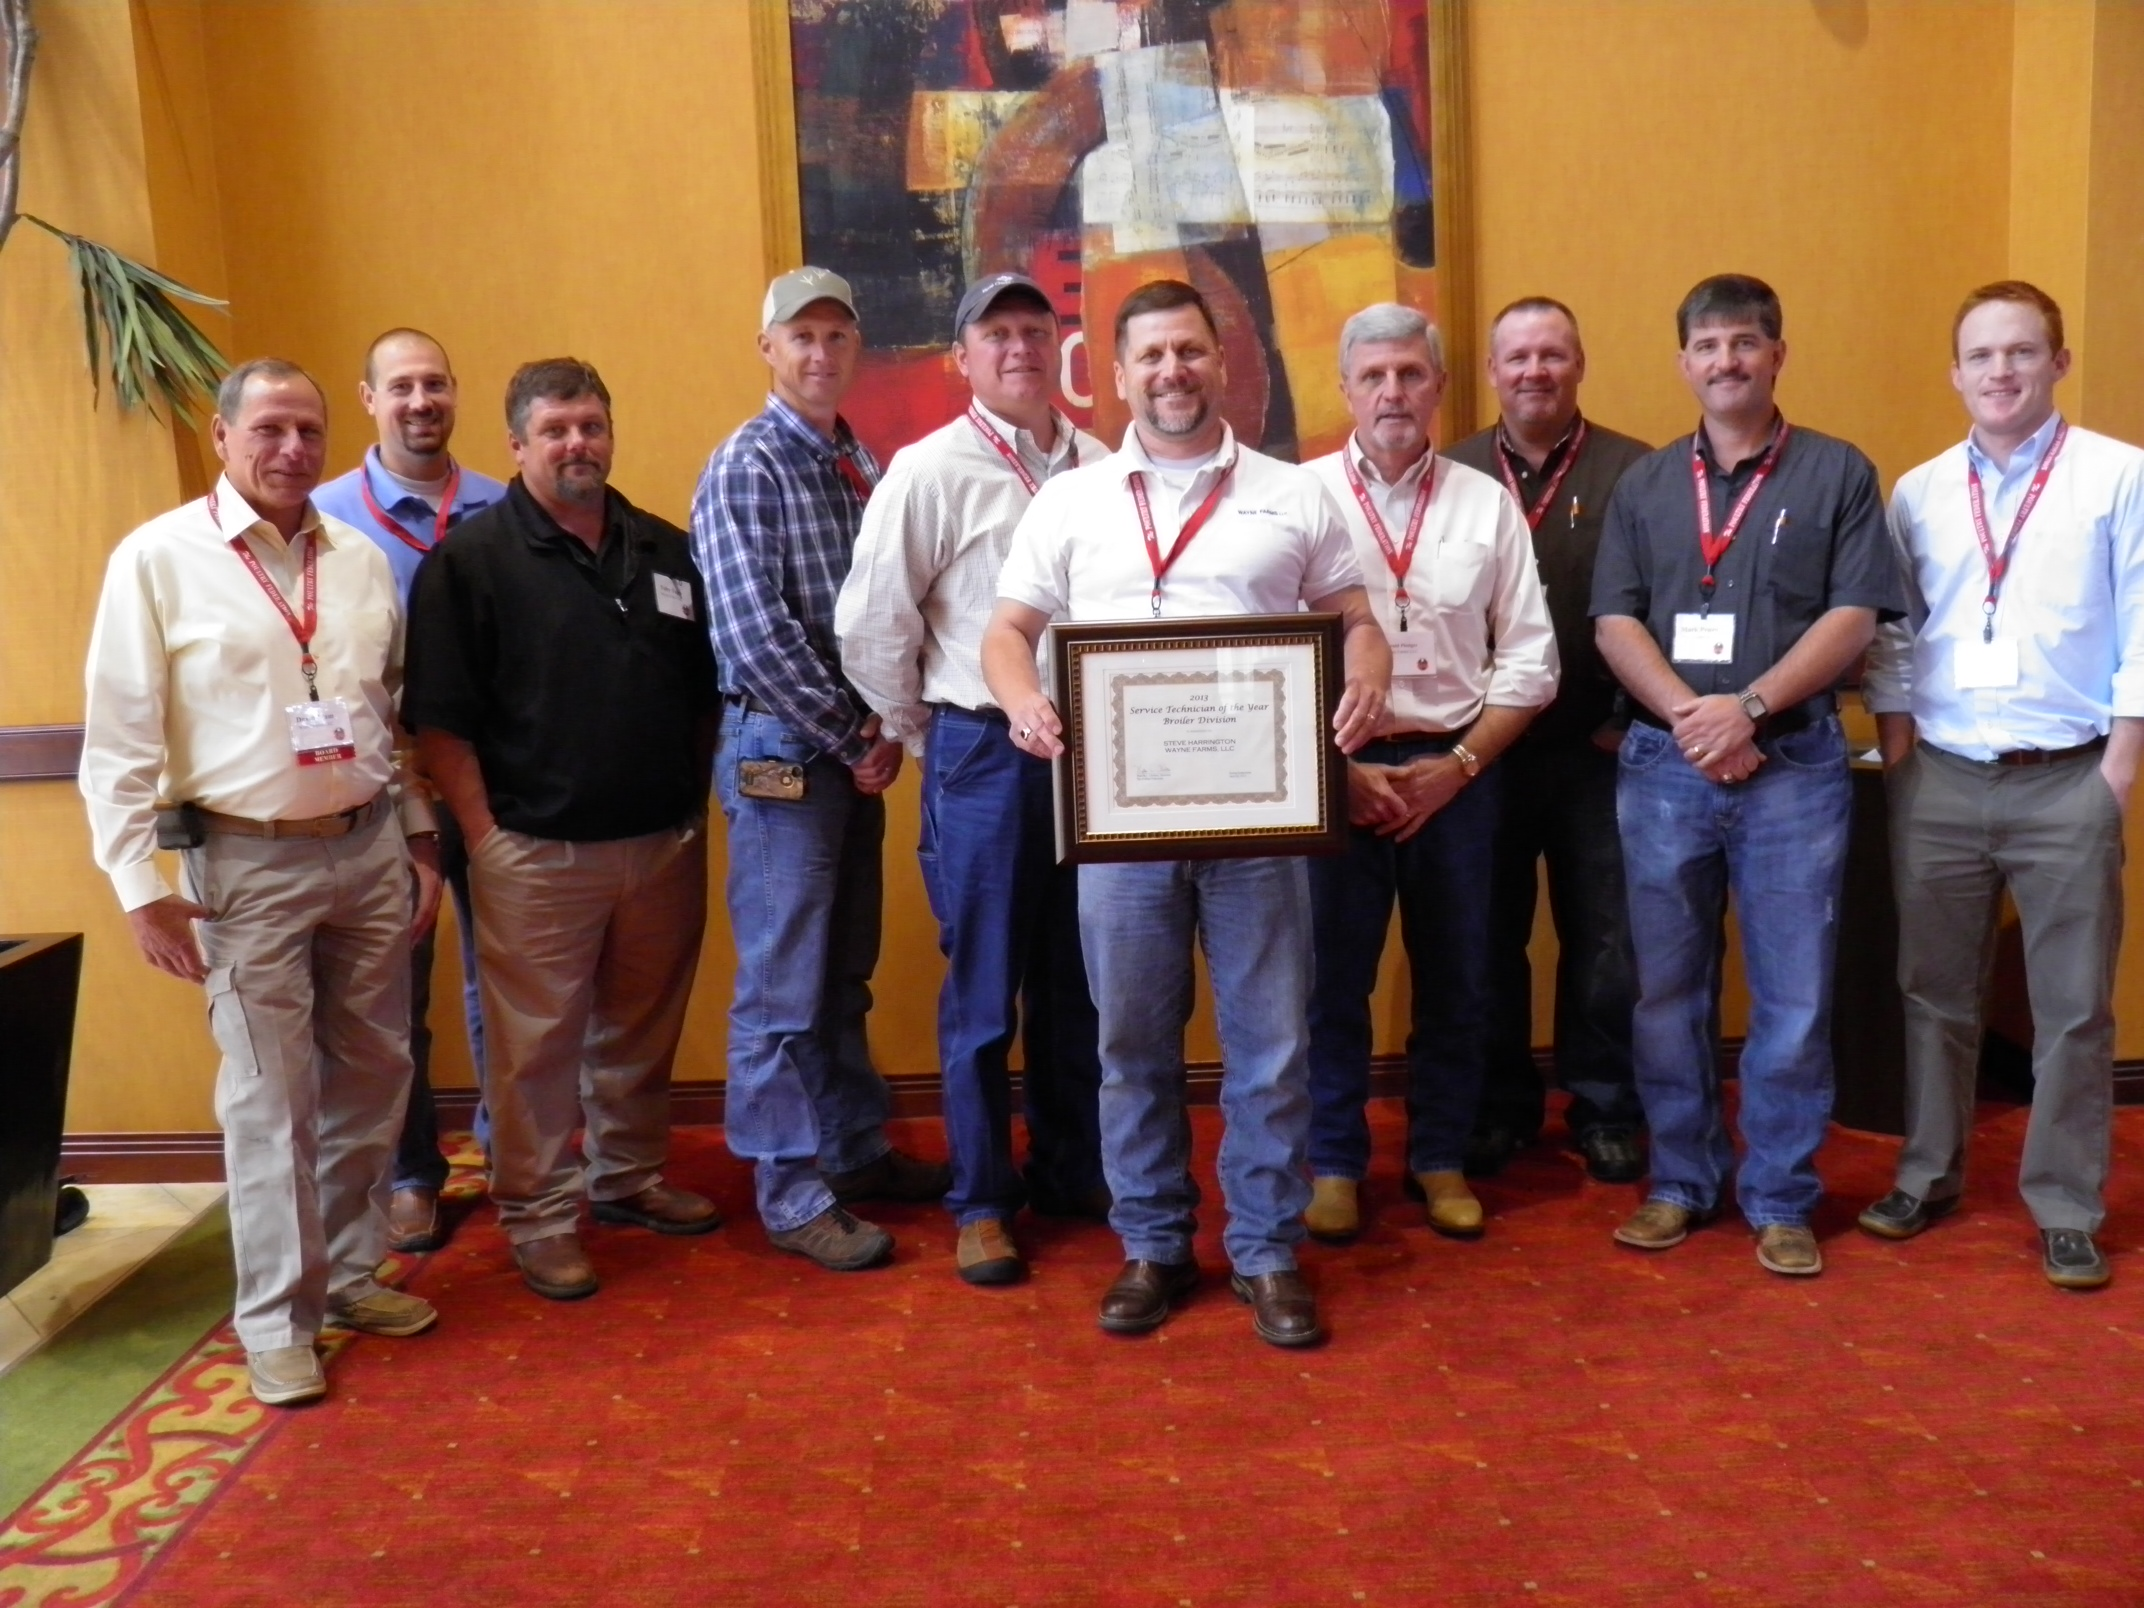 wayne farms employee named 2013 service technician of the